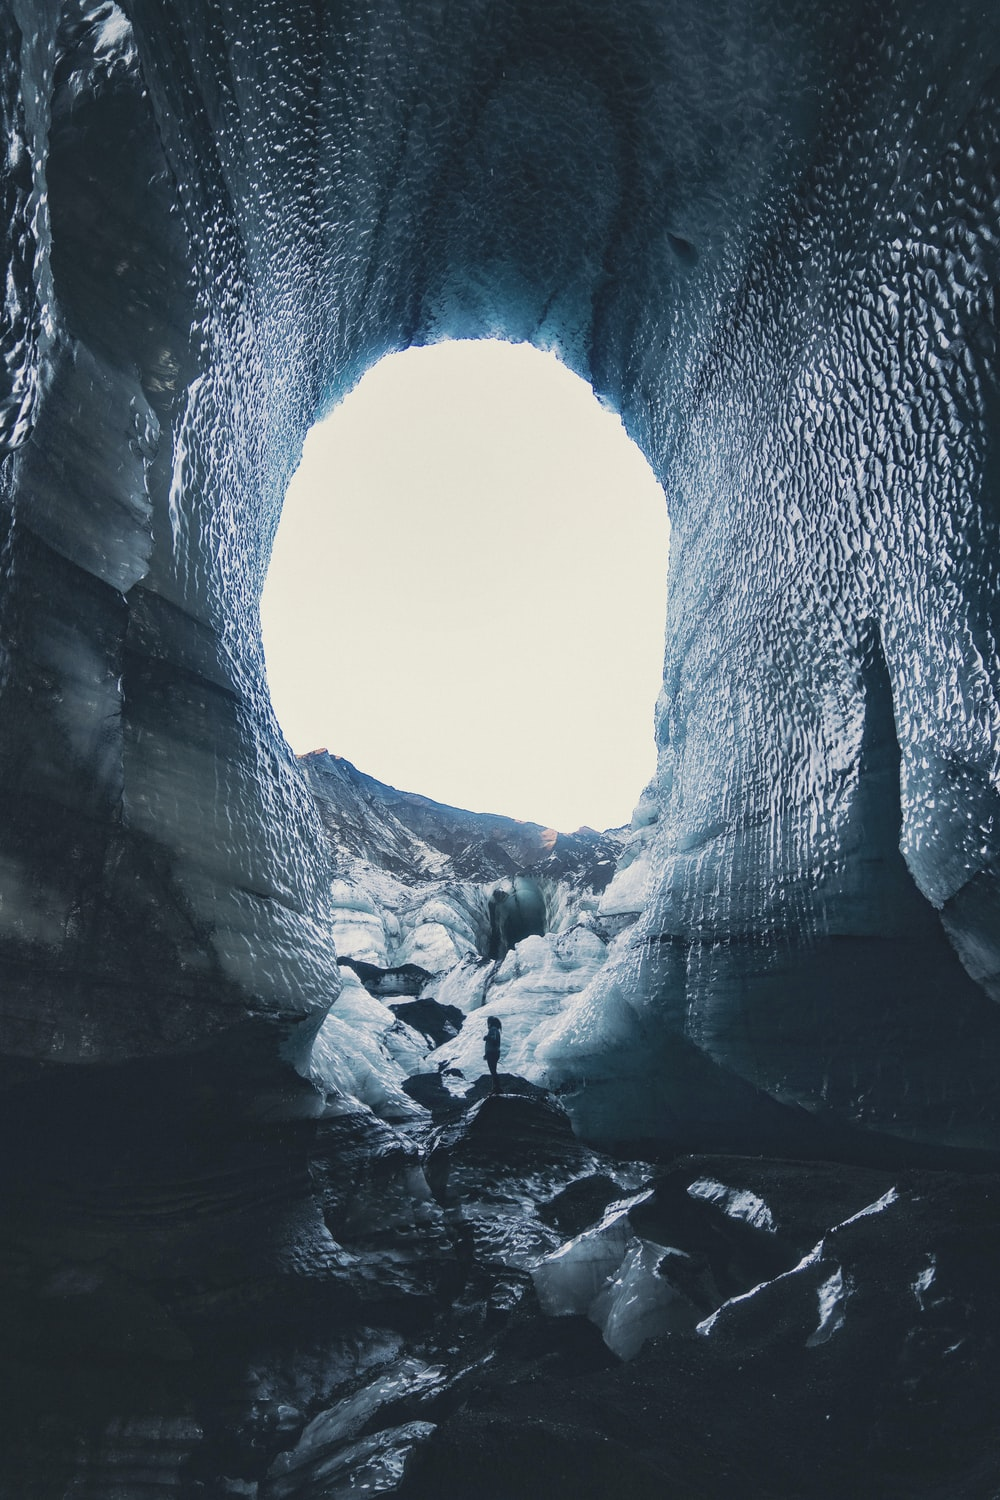 cave with snow during daytime